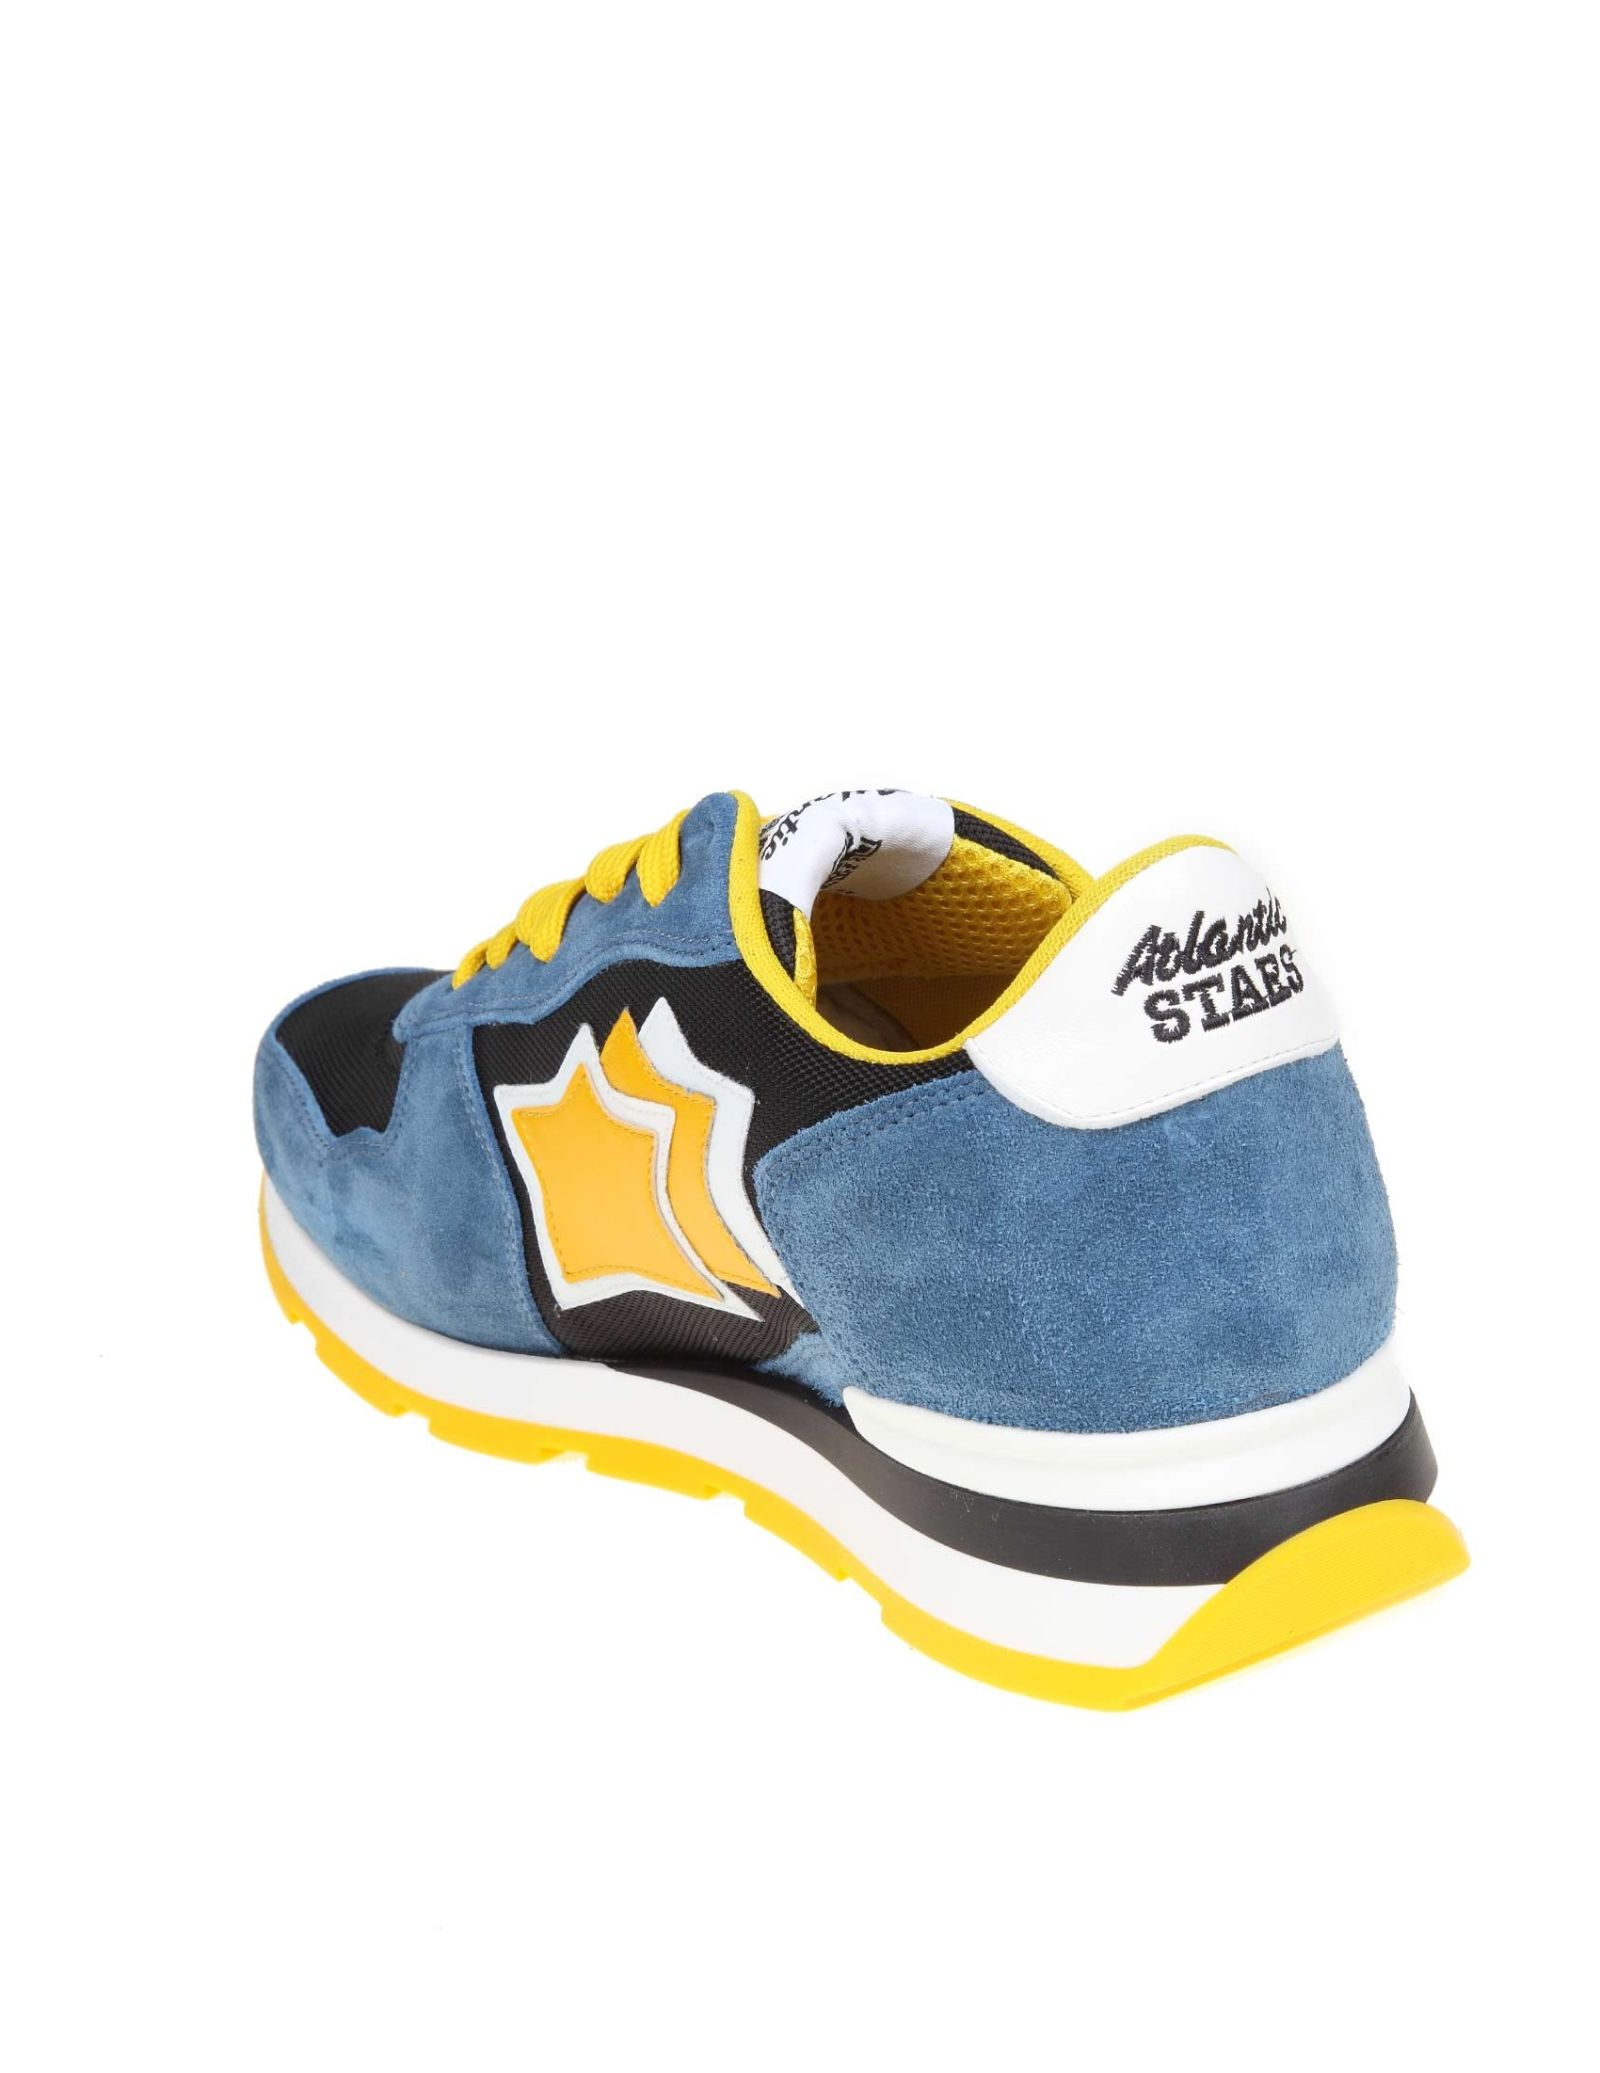 3a92badbc3cee ... Atlantic Stars Sneakers Antares In Suede And Blue And Yellow Fabric -  Basic ...